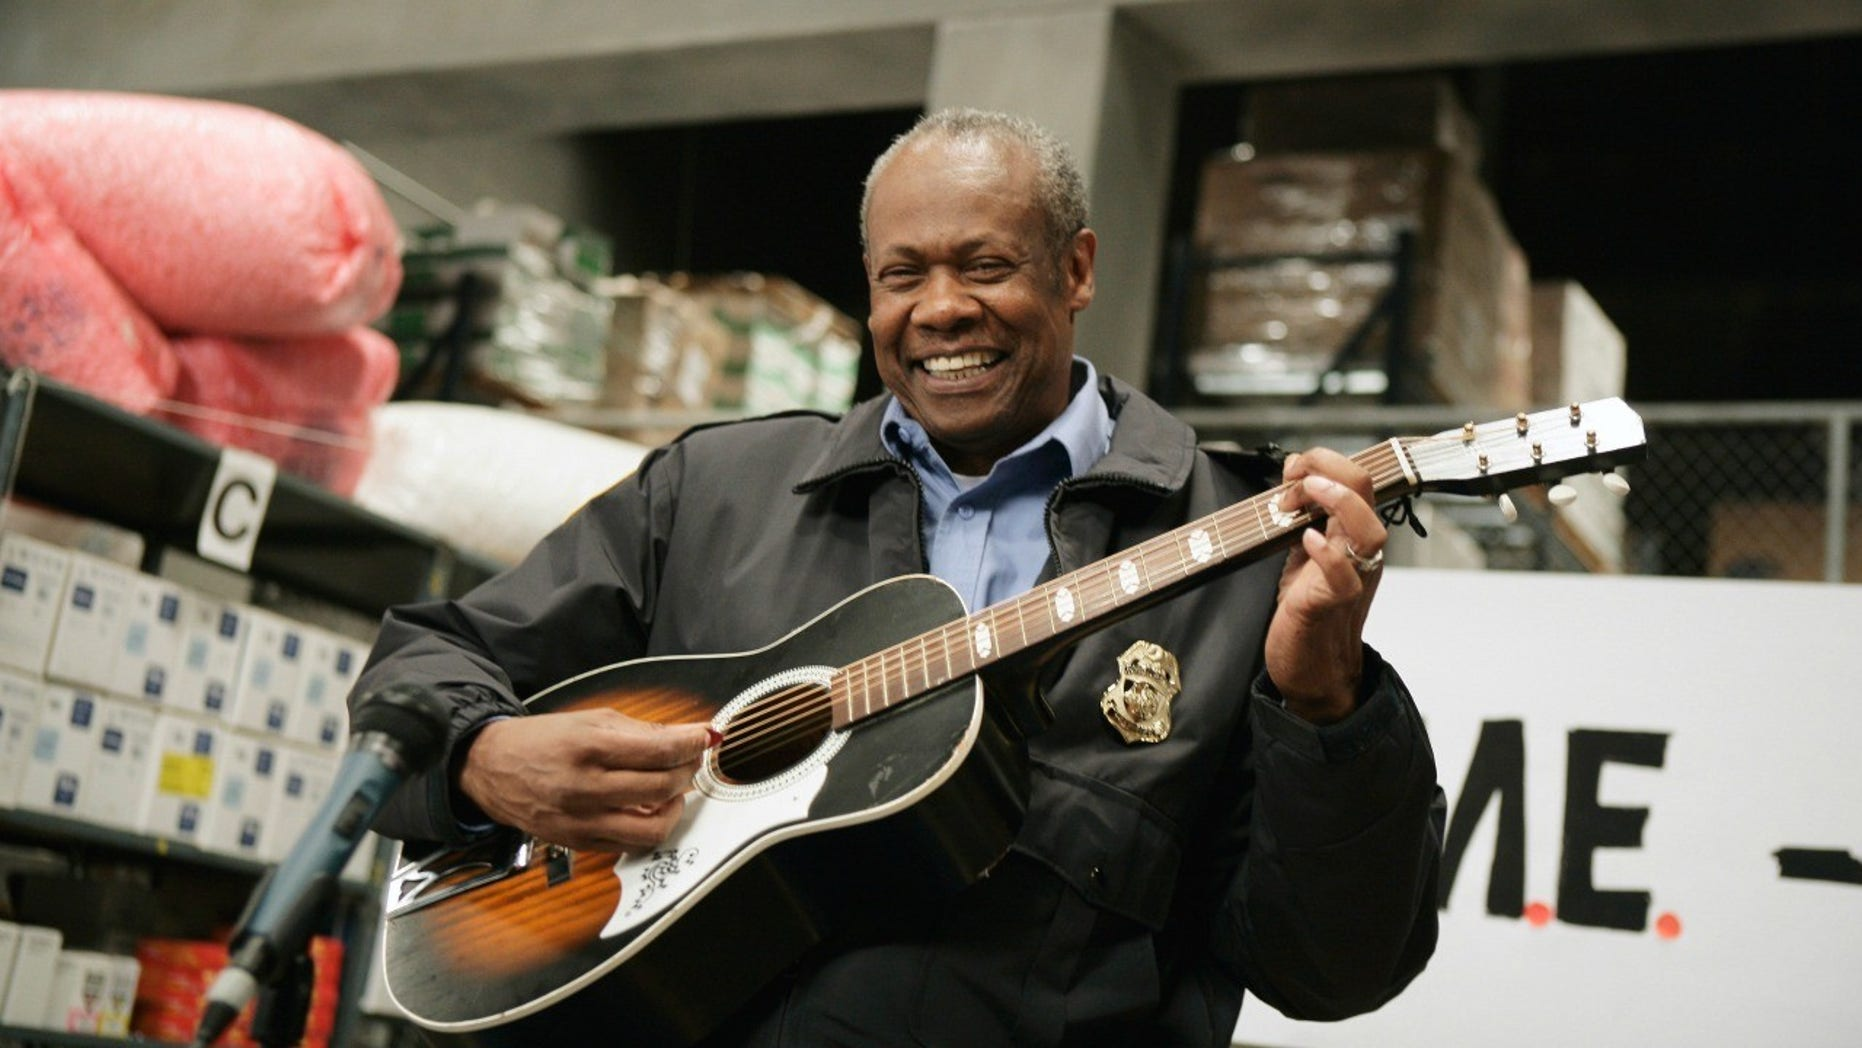 """Hugh Dane was best known for his role as security guard Hank on """"The Office."""""""